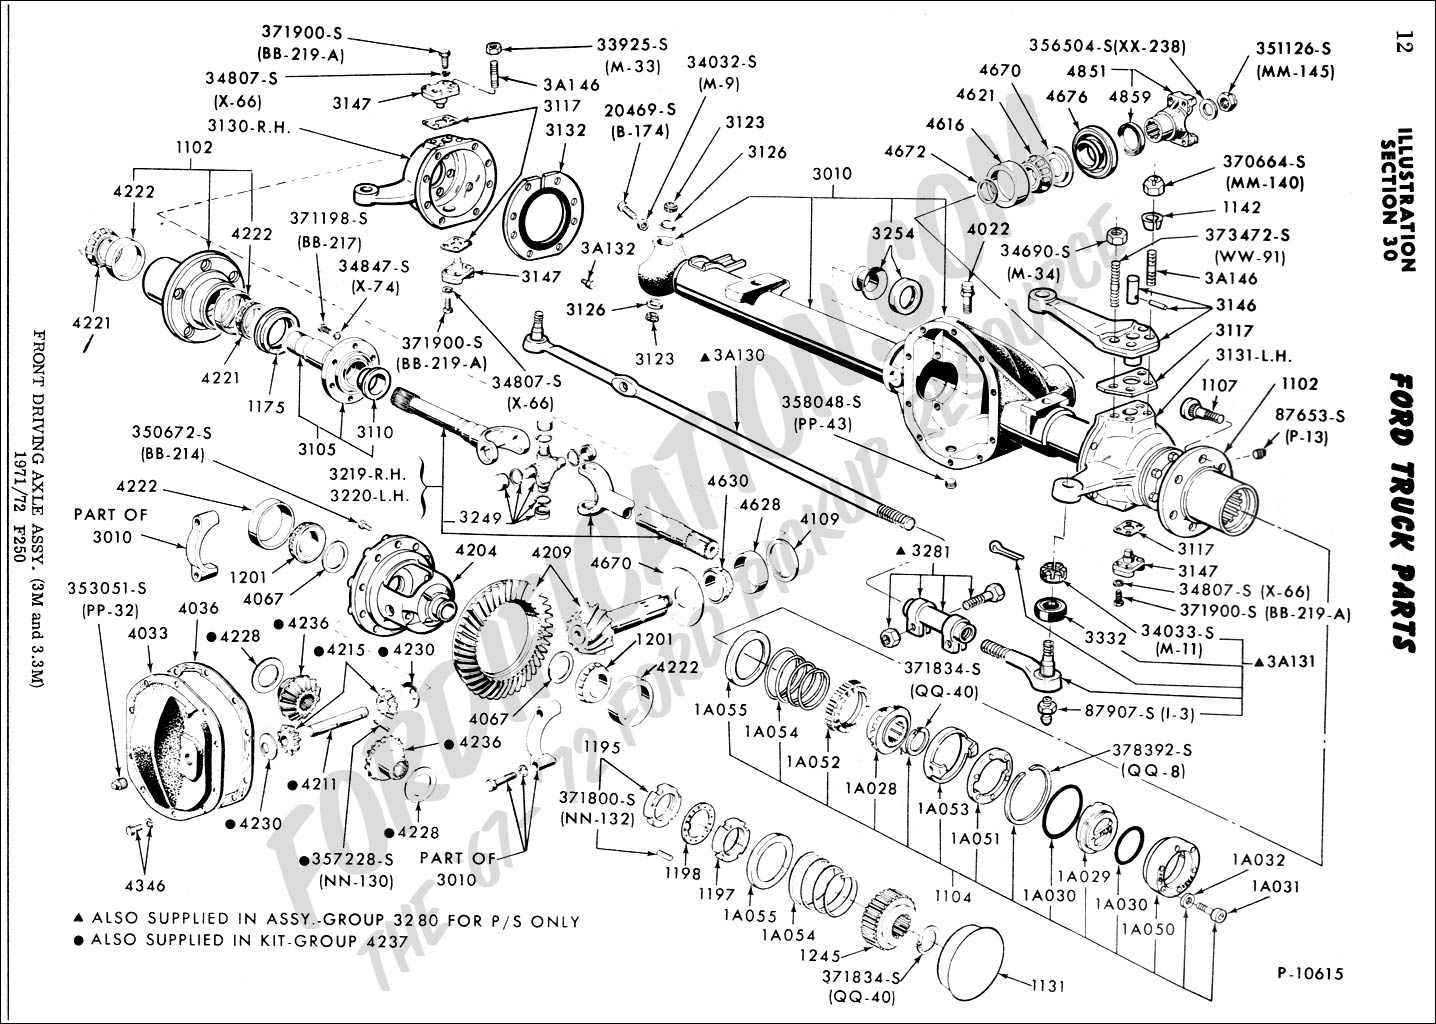 2000 Ford F250 Super Duty 4x4 Front Axle Diagram With Parts on Ford Crown Victoria Front Suspension Diagram